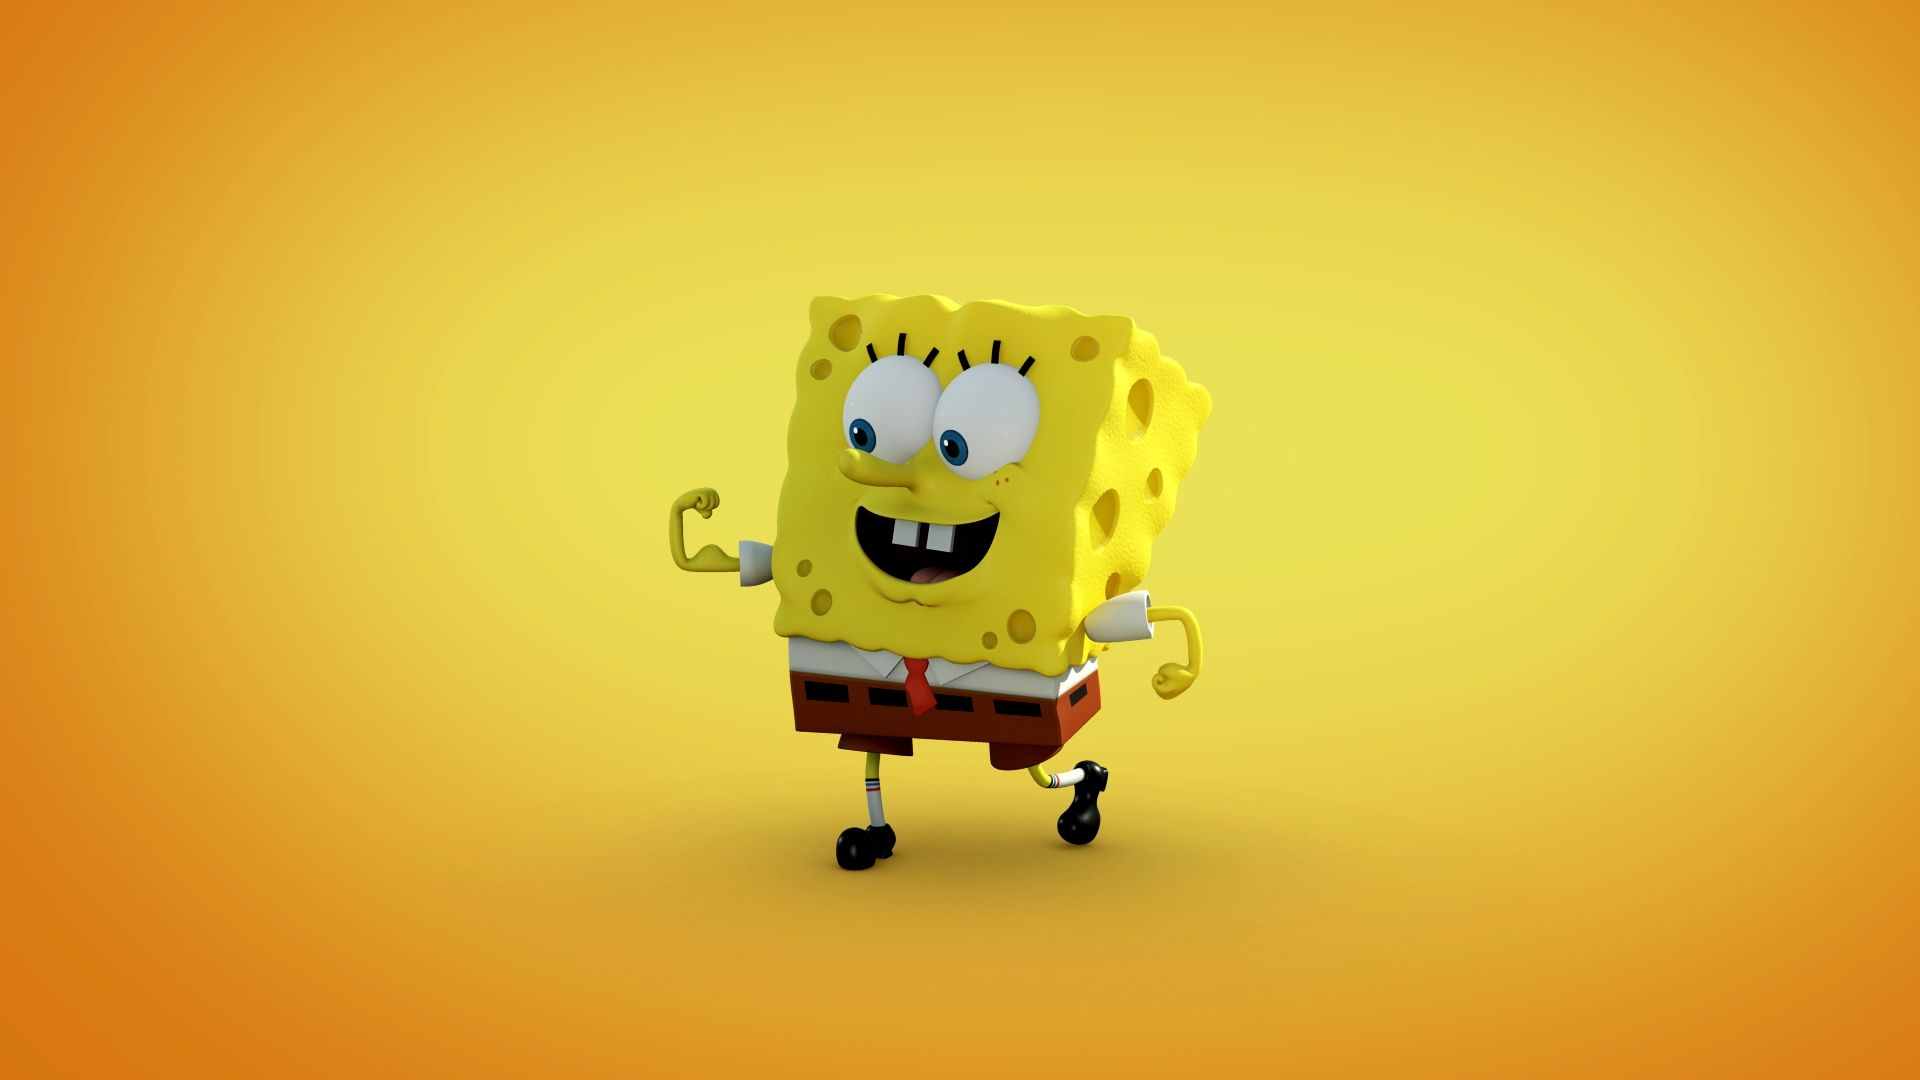 Spongebob Wallpaper High Quality Resolution Vtx Spongebob Iphone Wallpaper Spongebob Wallpaper Cartoon Wallpaper